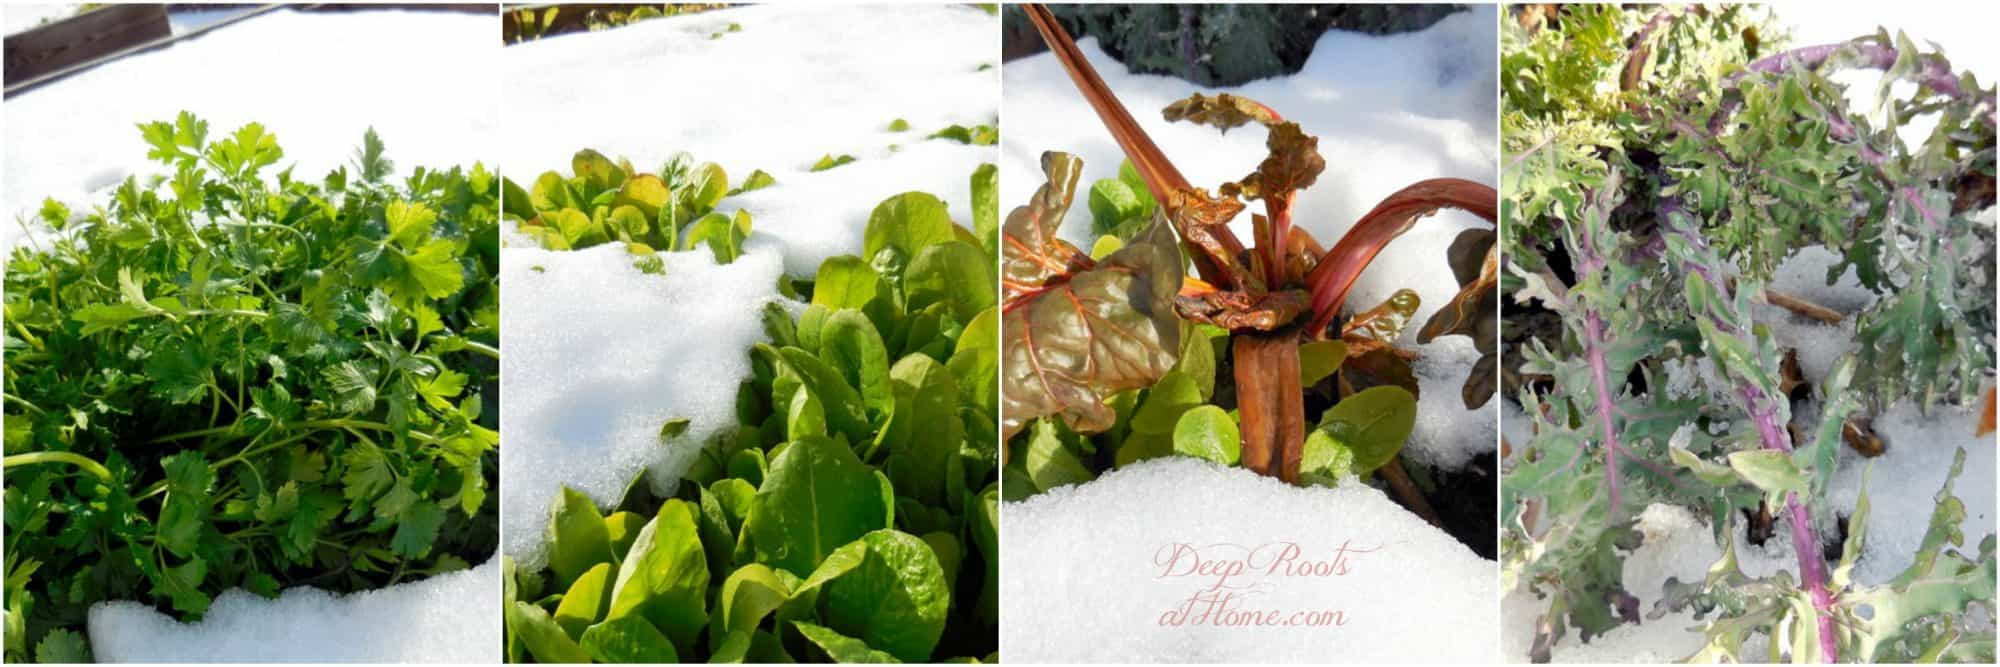 Choosing A Cold Frame That Works for You & 5 Plants That Defy the Snow, 4 greens that do well in the snow